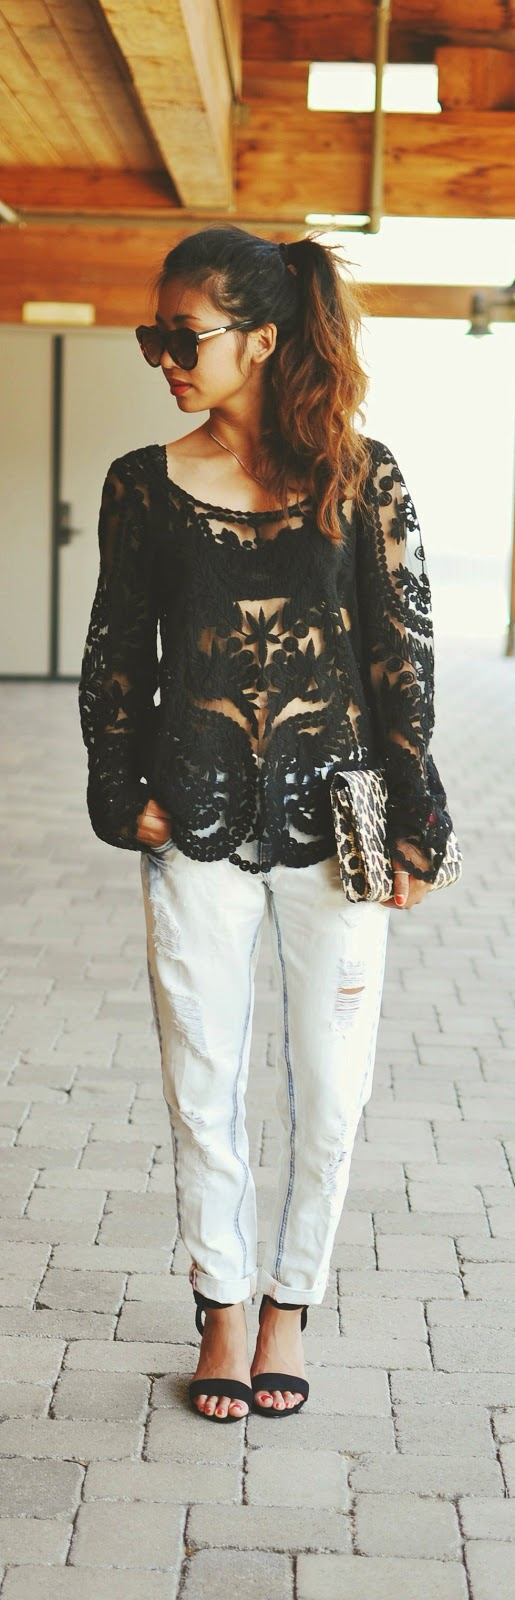 Black Lace Blouse with Ripped Jeans | Causal Chic Outfits